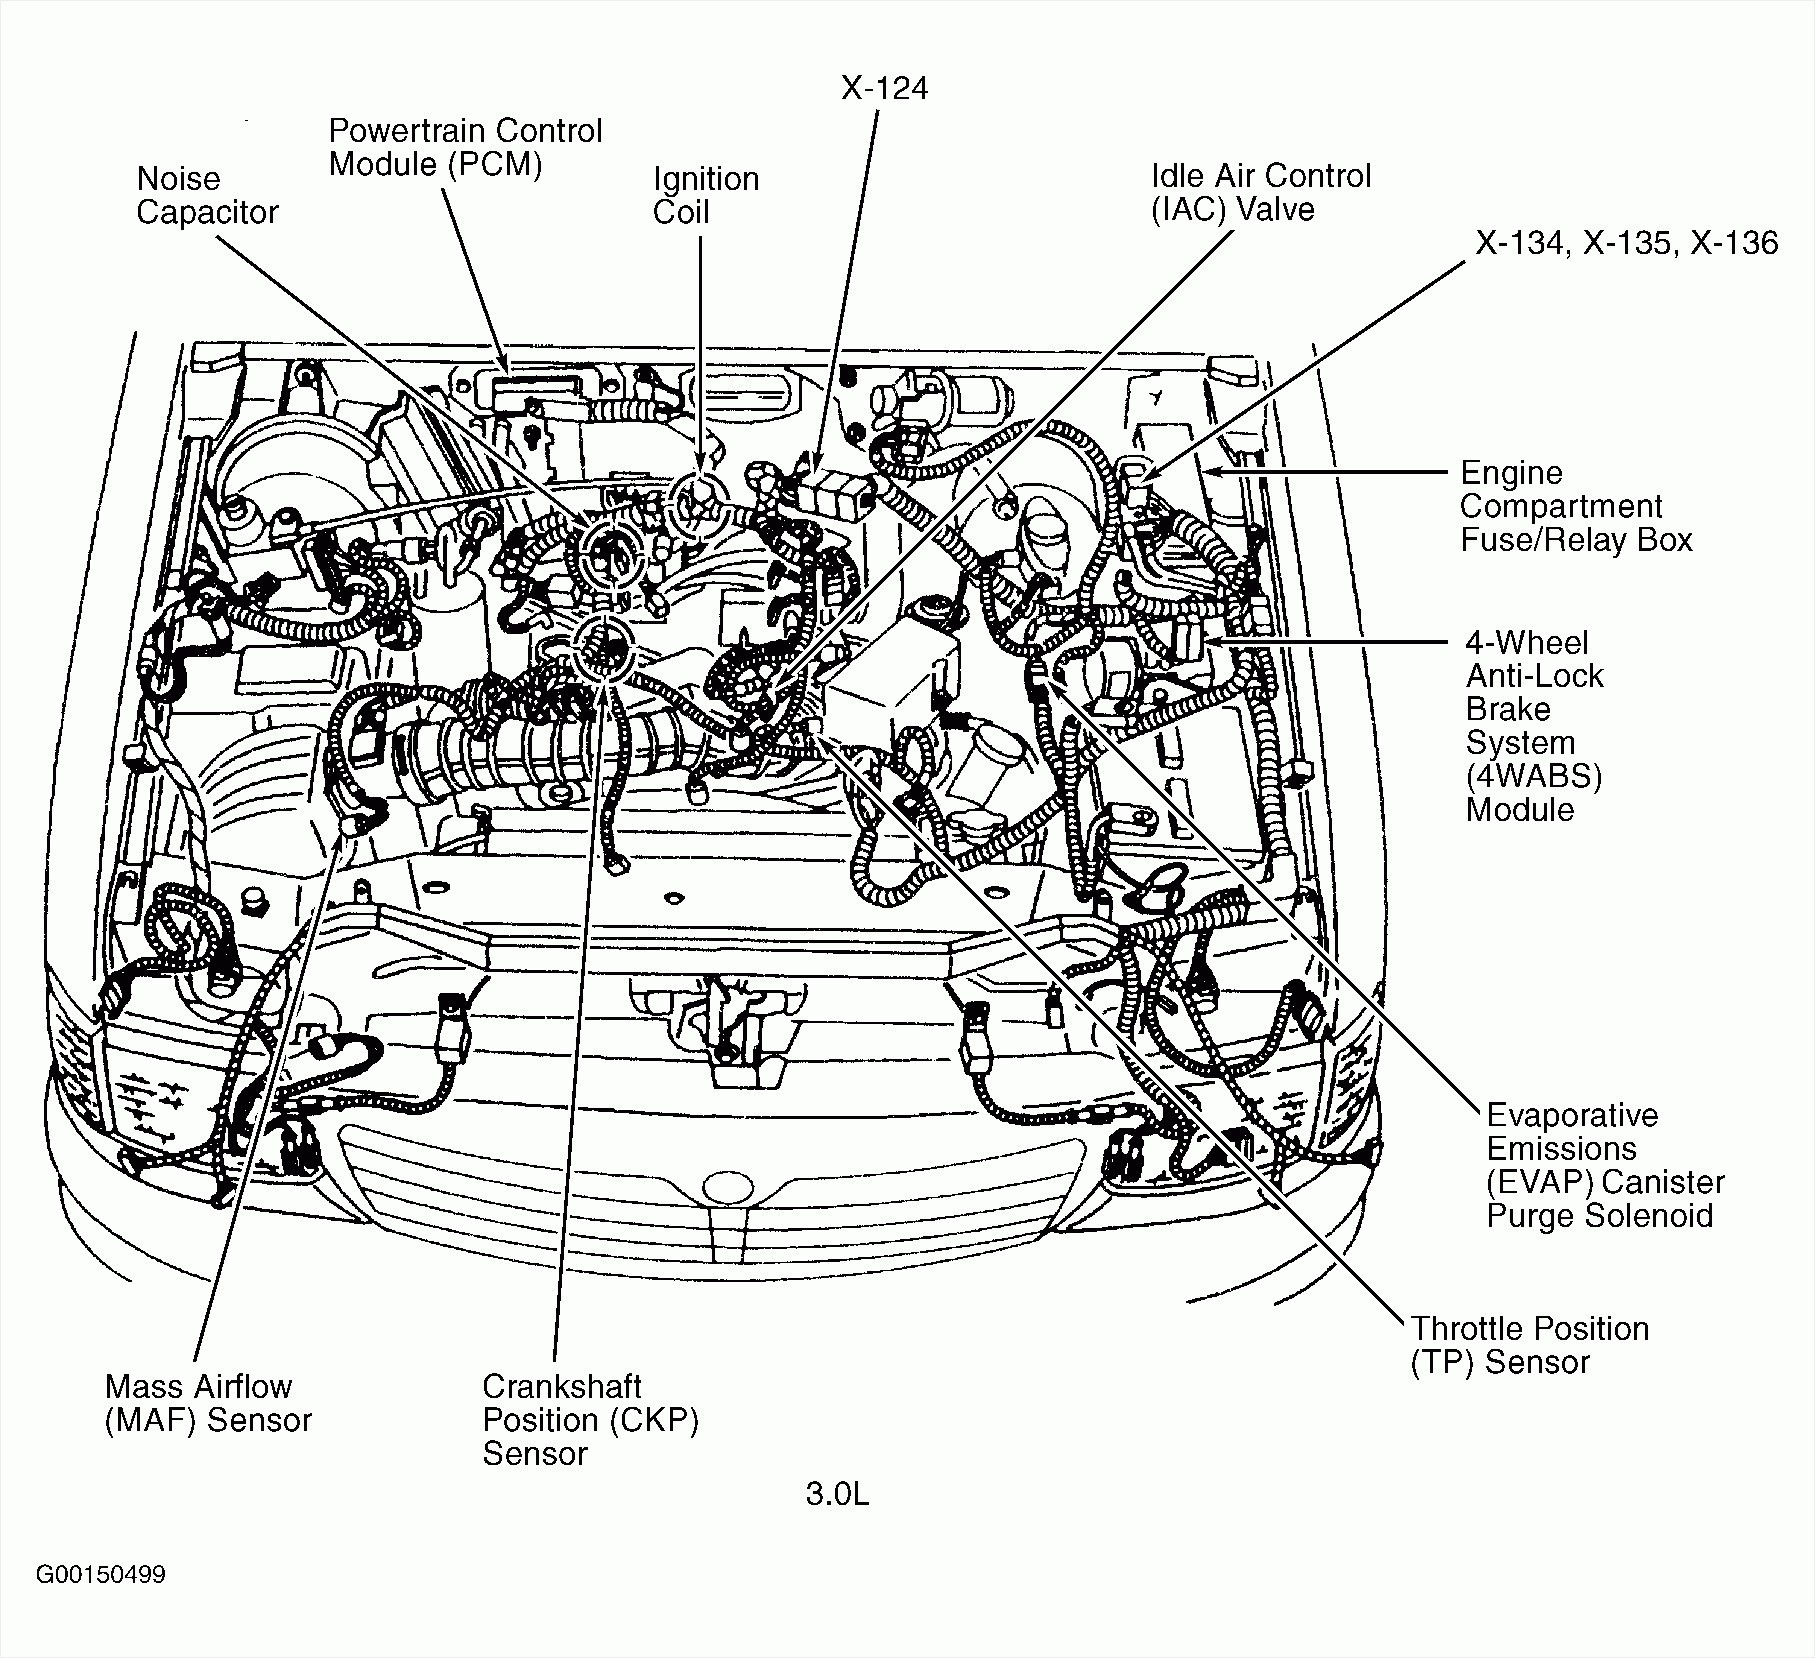 Mx Engine Bay Diagram Layout For Mazda Engine Wiring Diagrams E A Of Mx Engine Bay Diagram on 2002 Beetle Tdi Thermostat Location